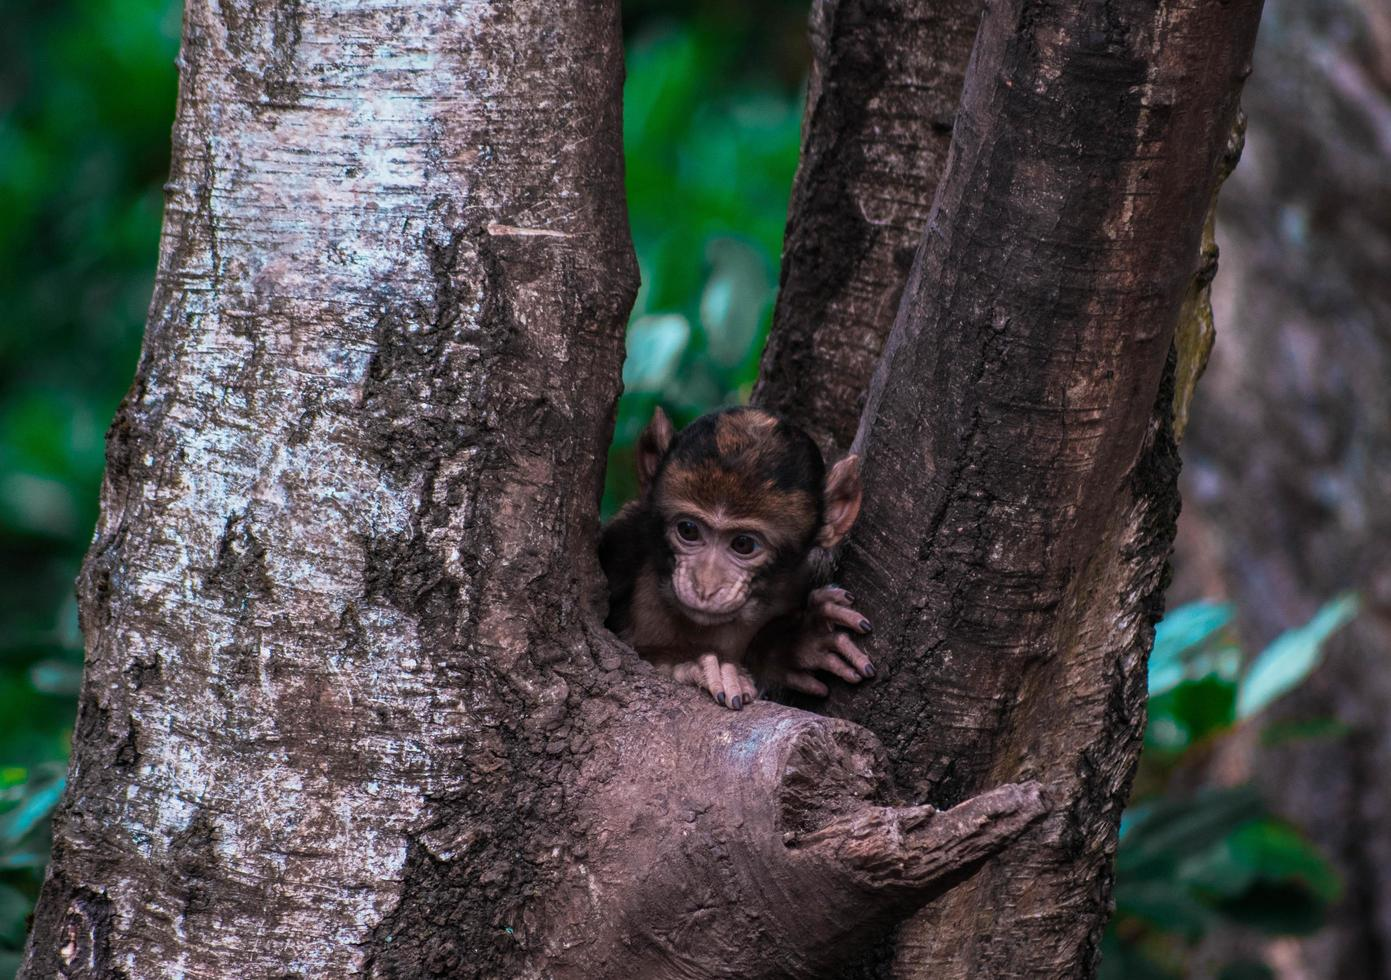 Monkey peering out from tree photo